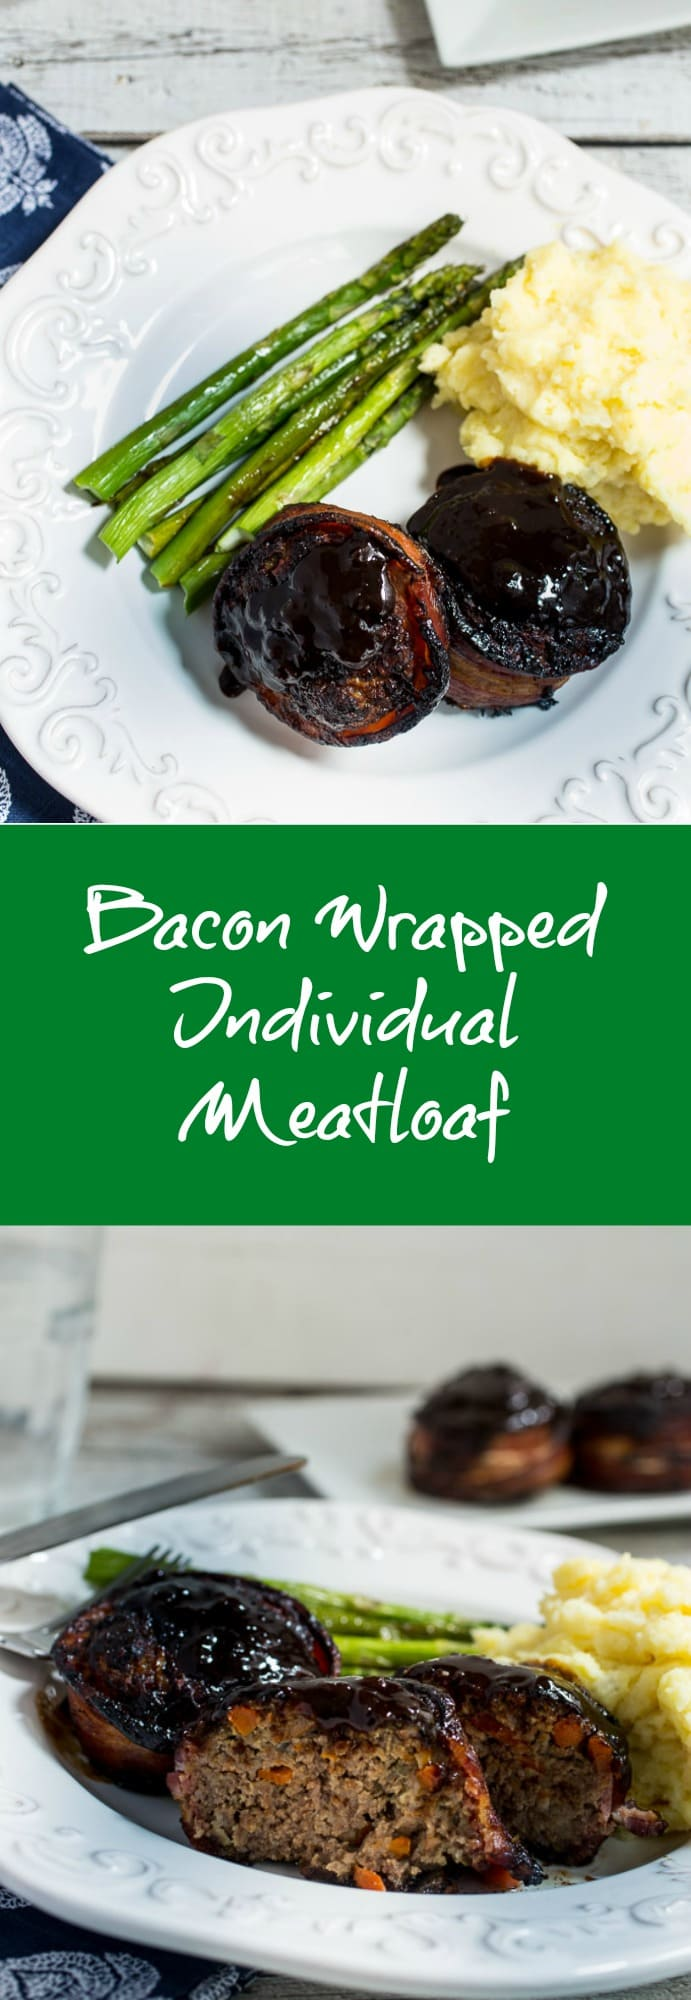 Bacon Wrapped Individual Meatloaf | girlinthelittleredkitchen.com